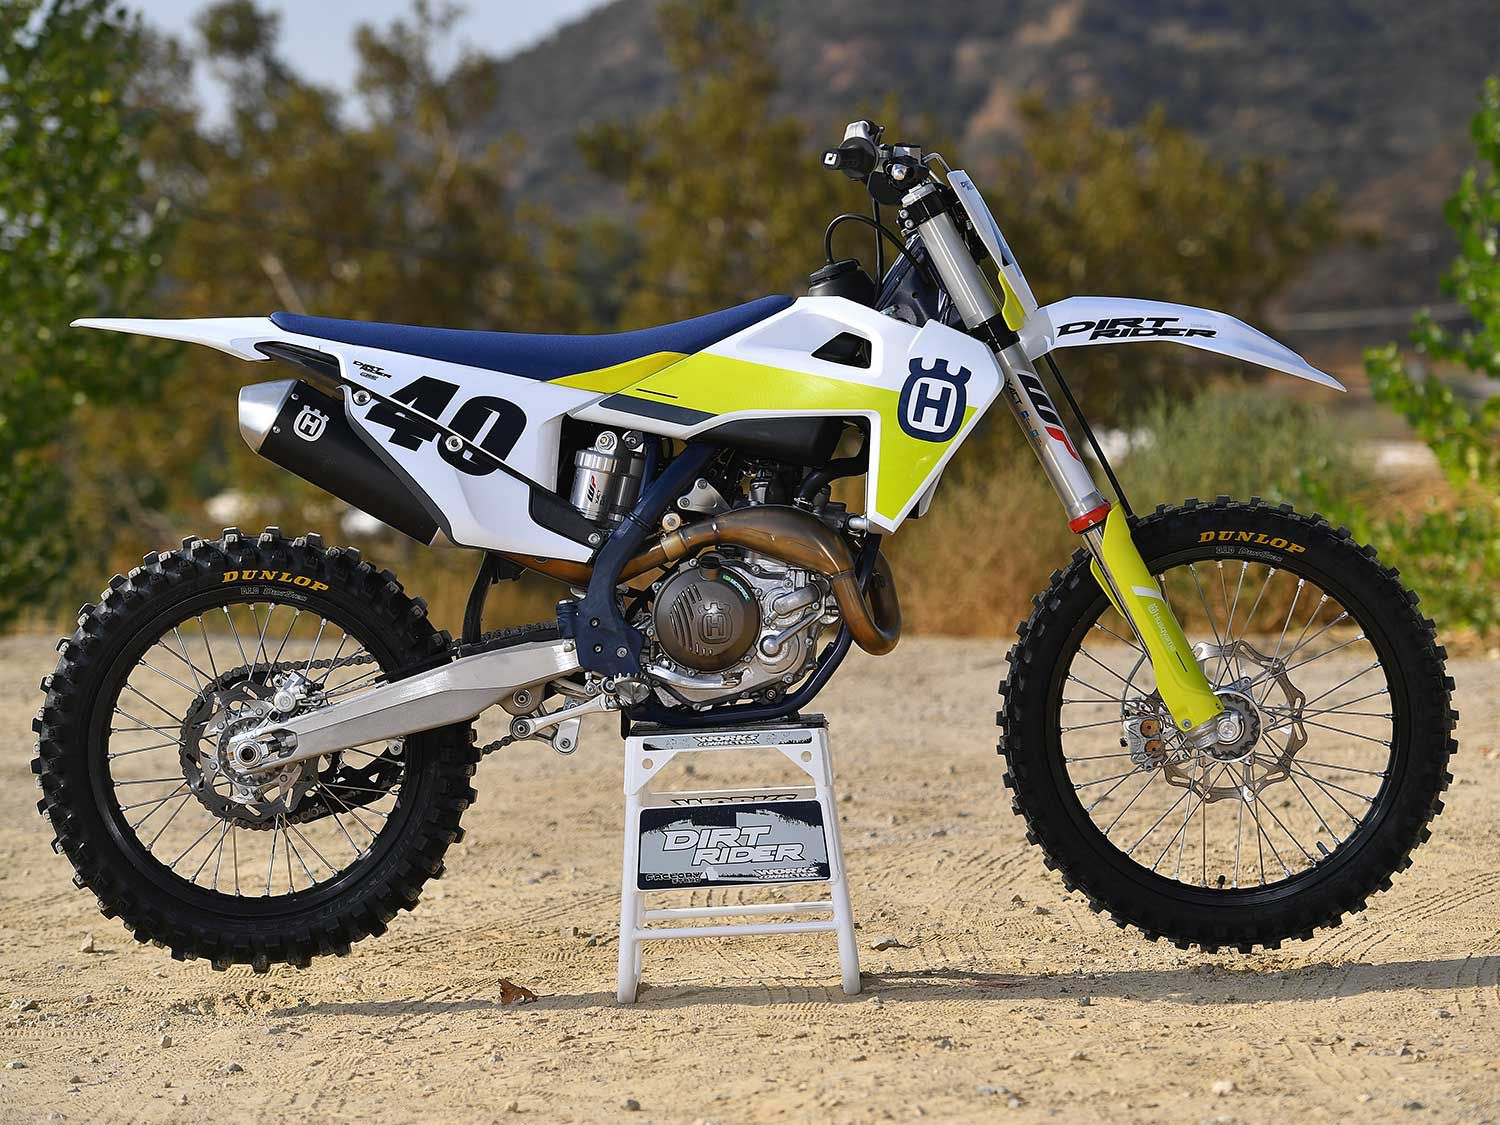 One of the big updates the FC 450 and the rest of Husqvarna's full-size motocross lineup received for MY21 is a lowered chassis. This was achieved by shortening the fork tubes and revising the shock linkage.